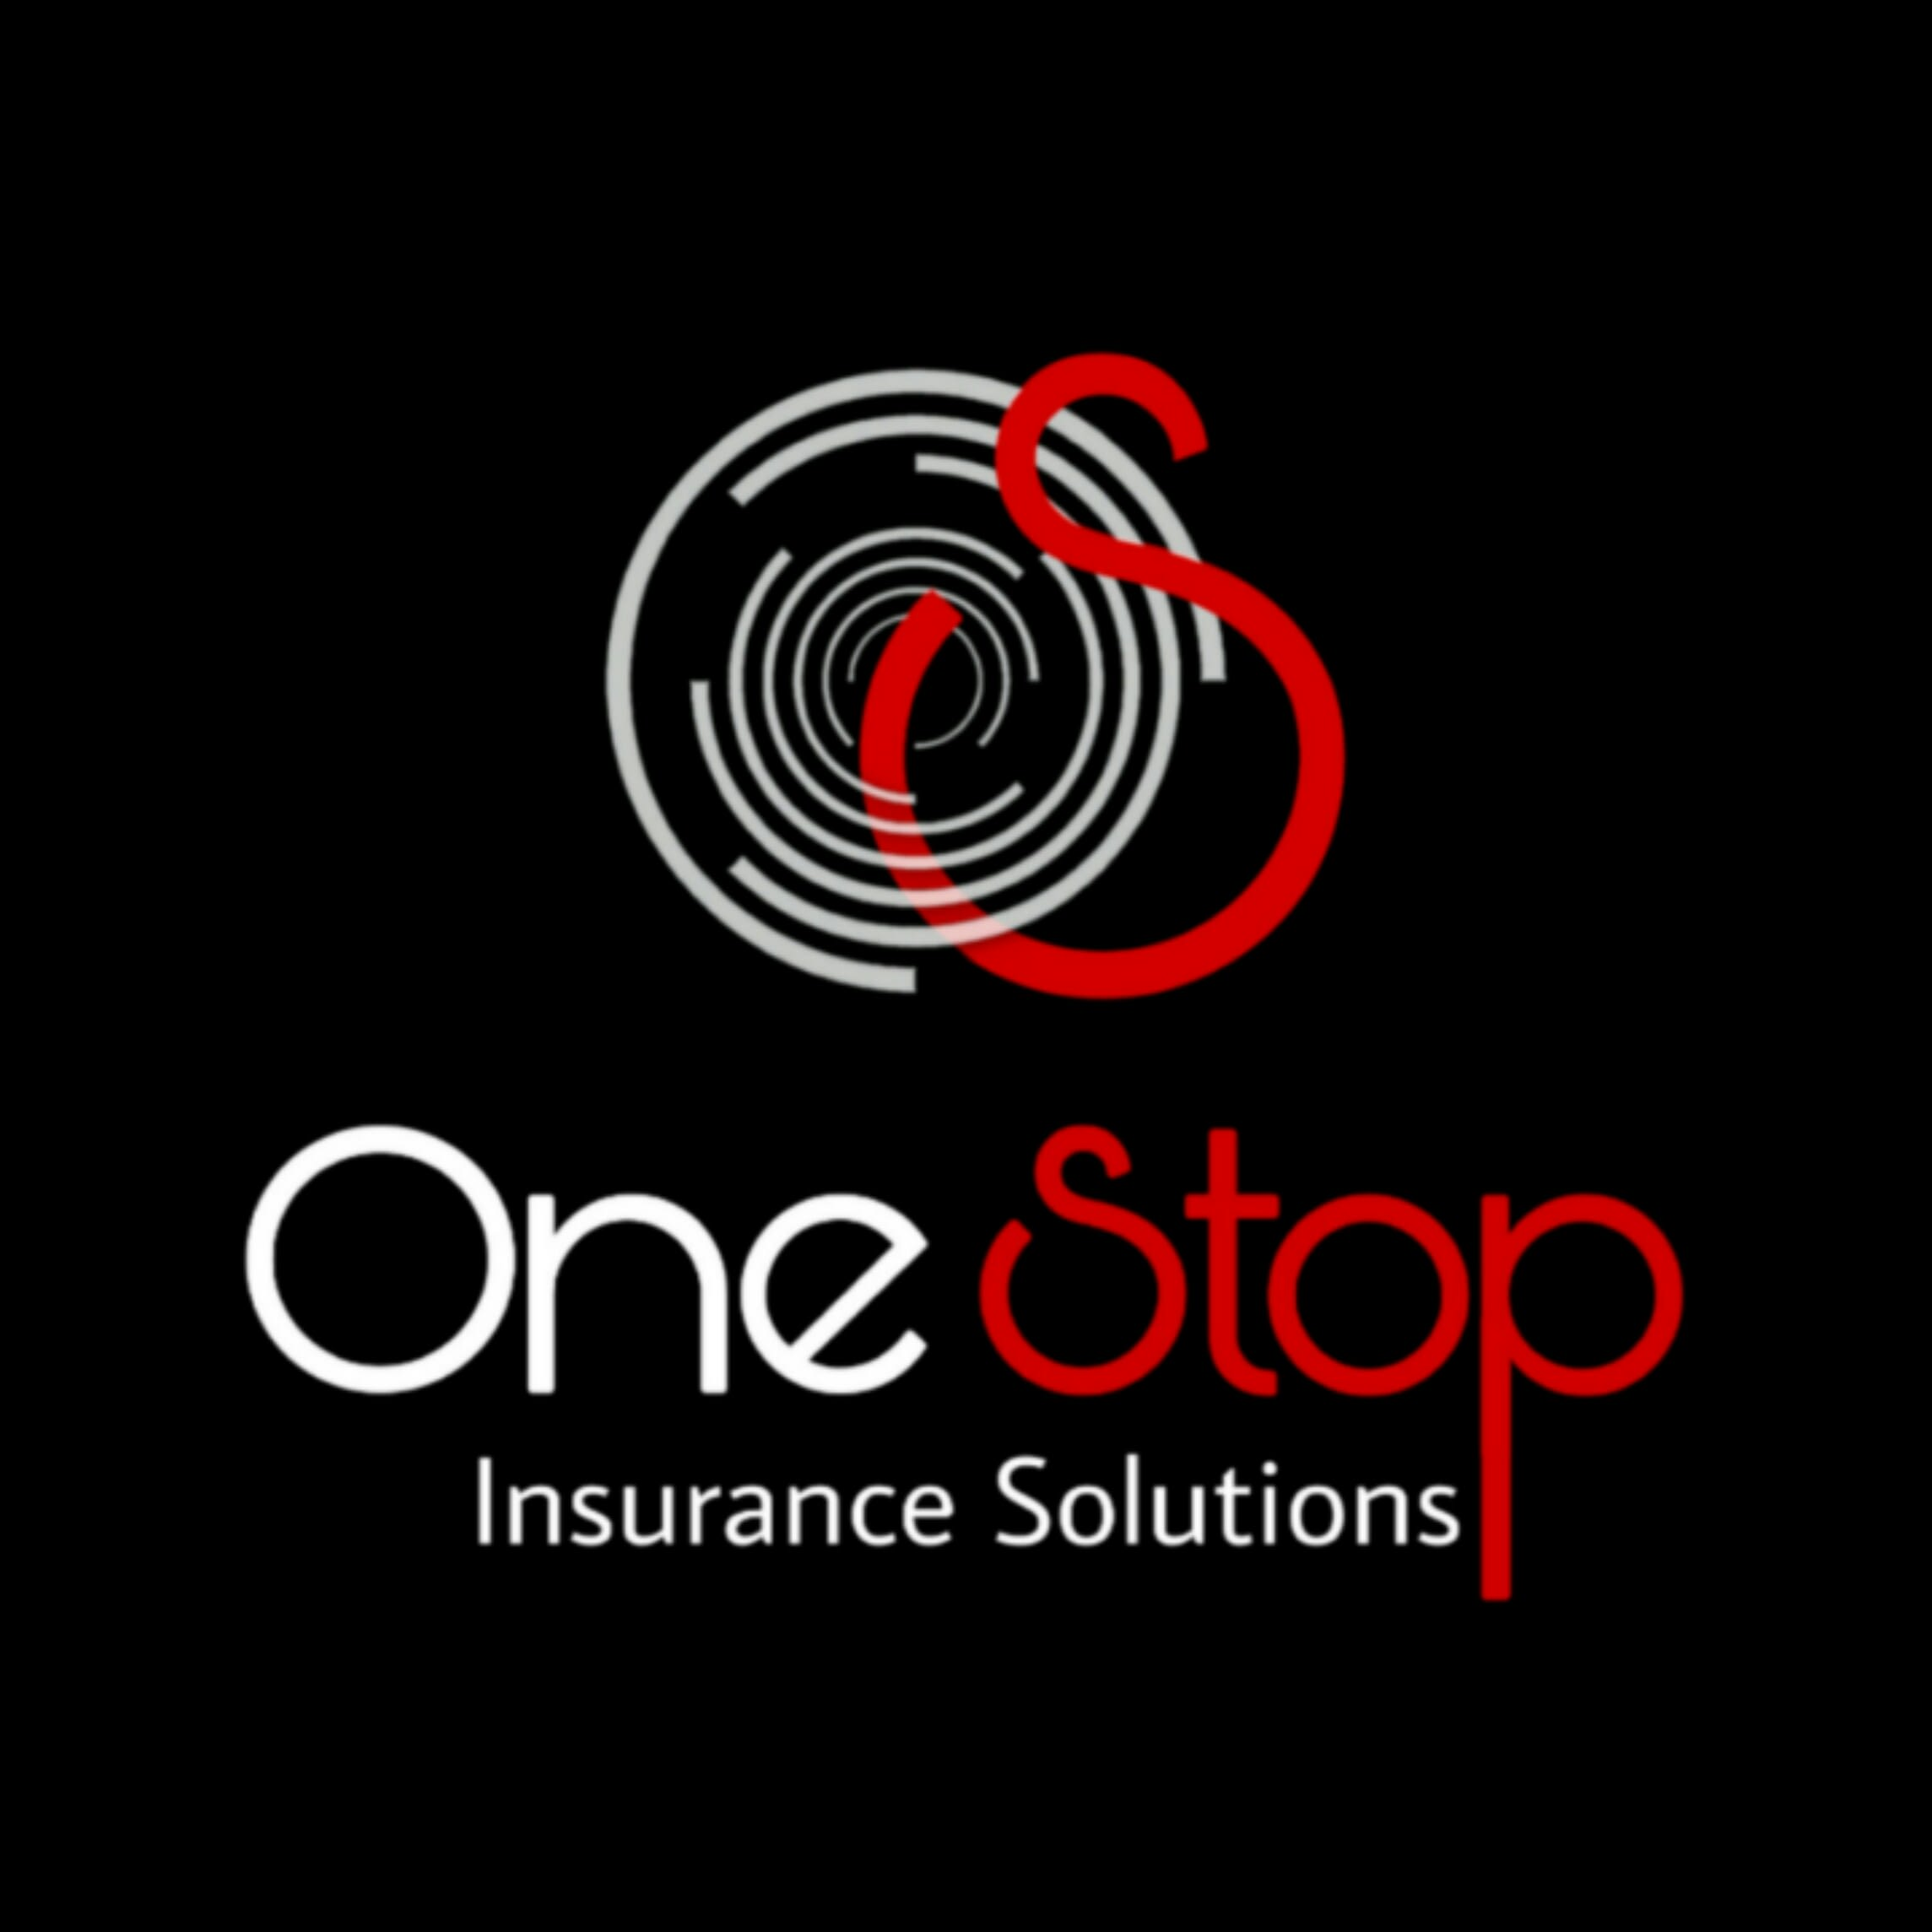 One Stop Insurance Solutions